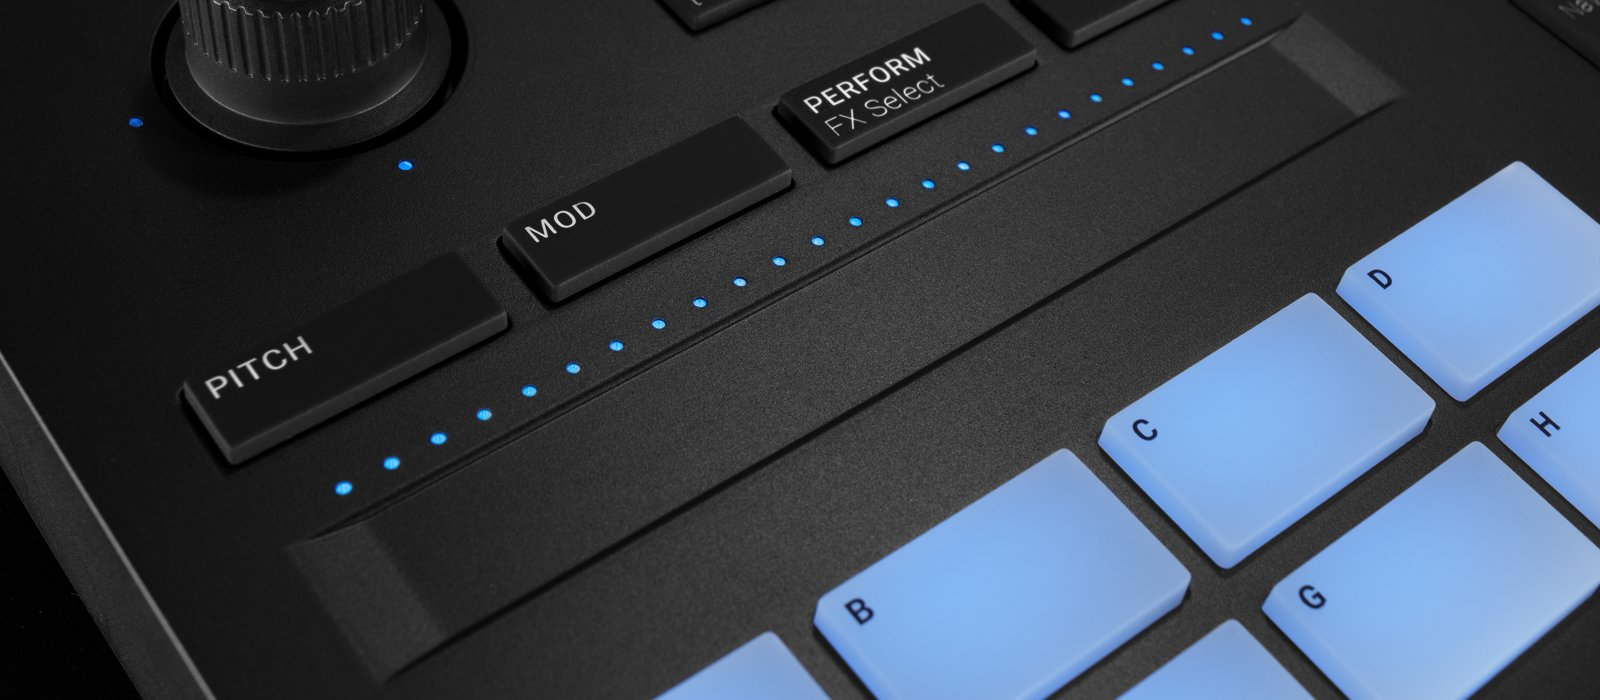 Maschine MK3 now features a Smart Strip for additional expressive and creative options.